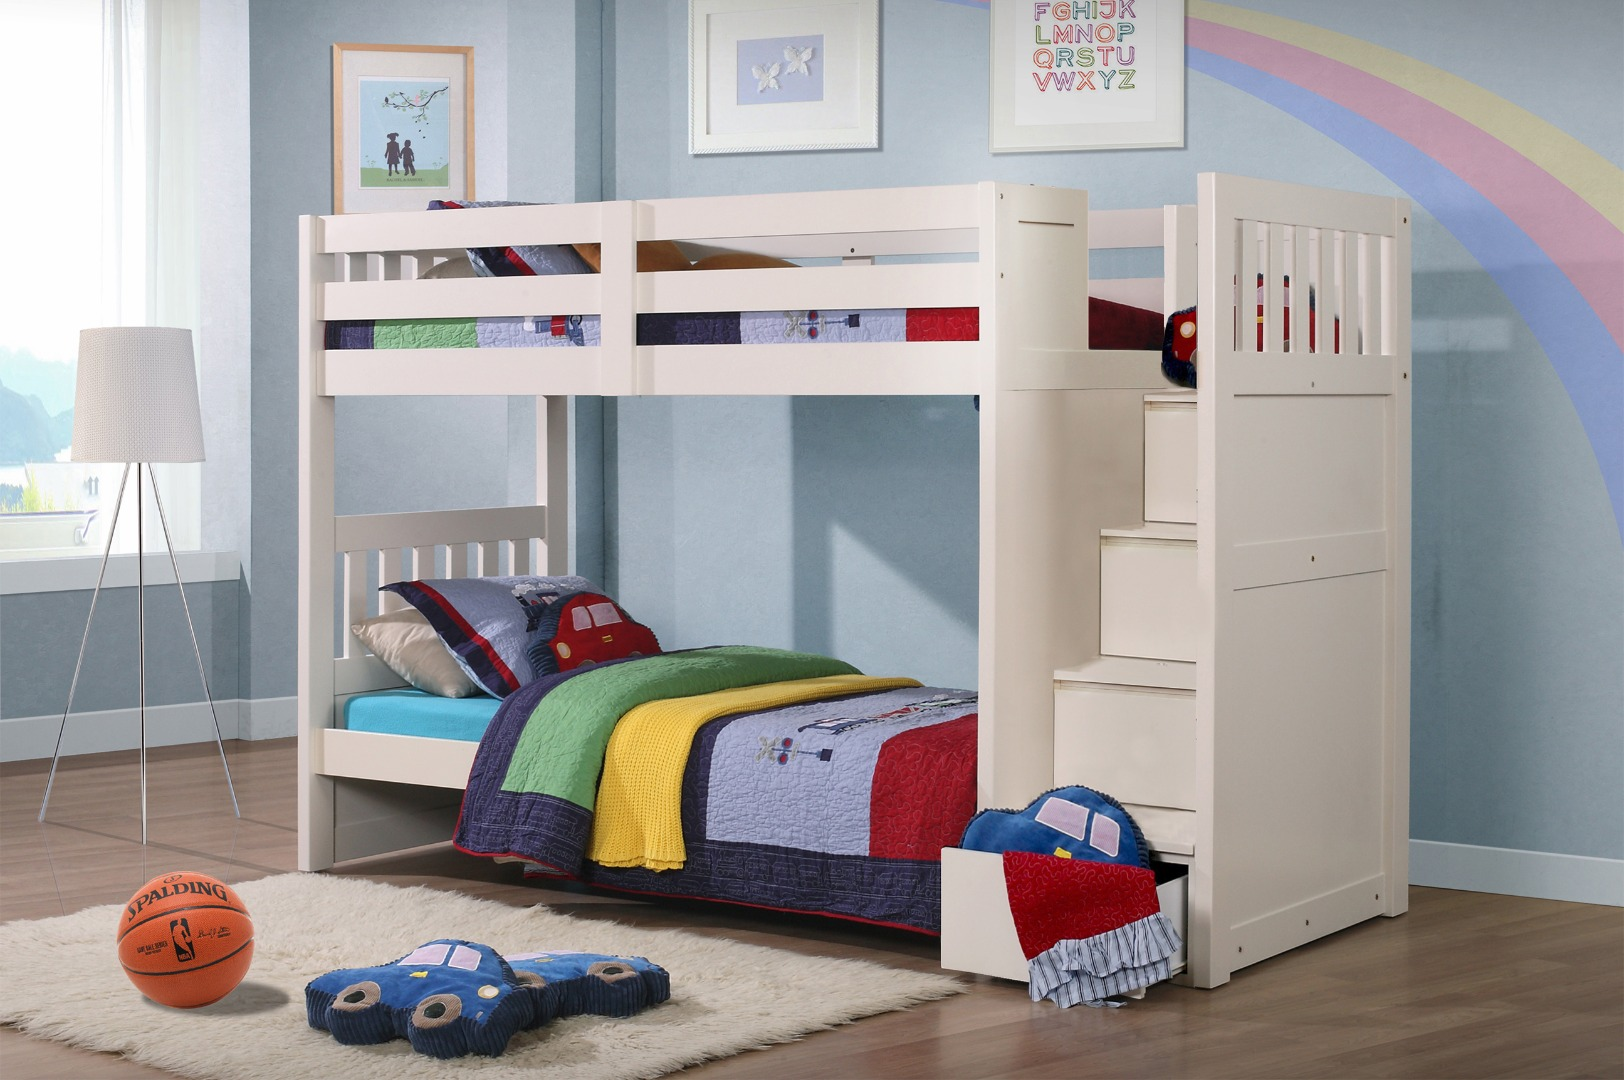 Luxury kids bunk beds with stairs ... bunk bed stairs bed with stairs for kids o enigh loft kid aixtblo